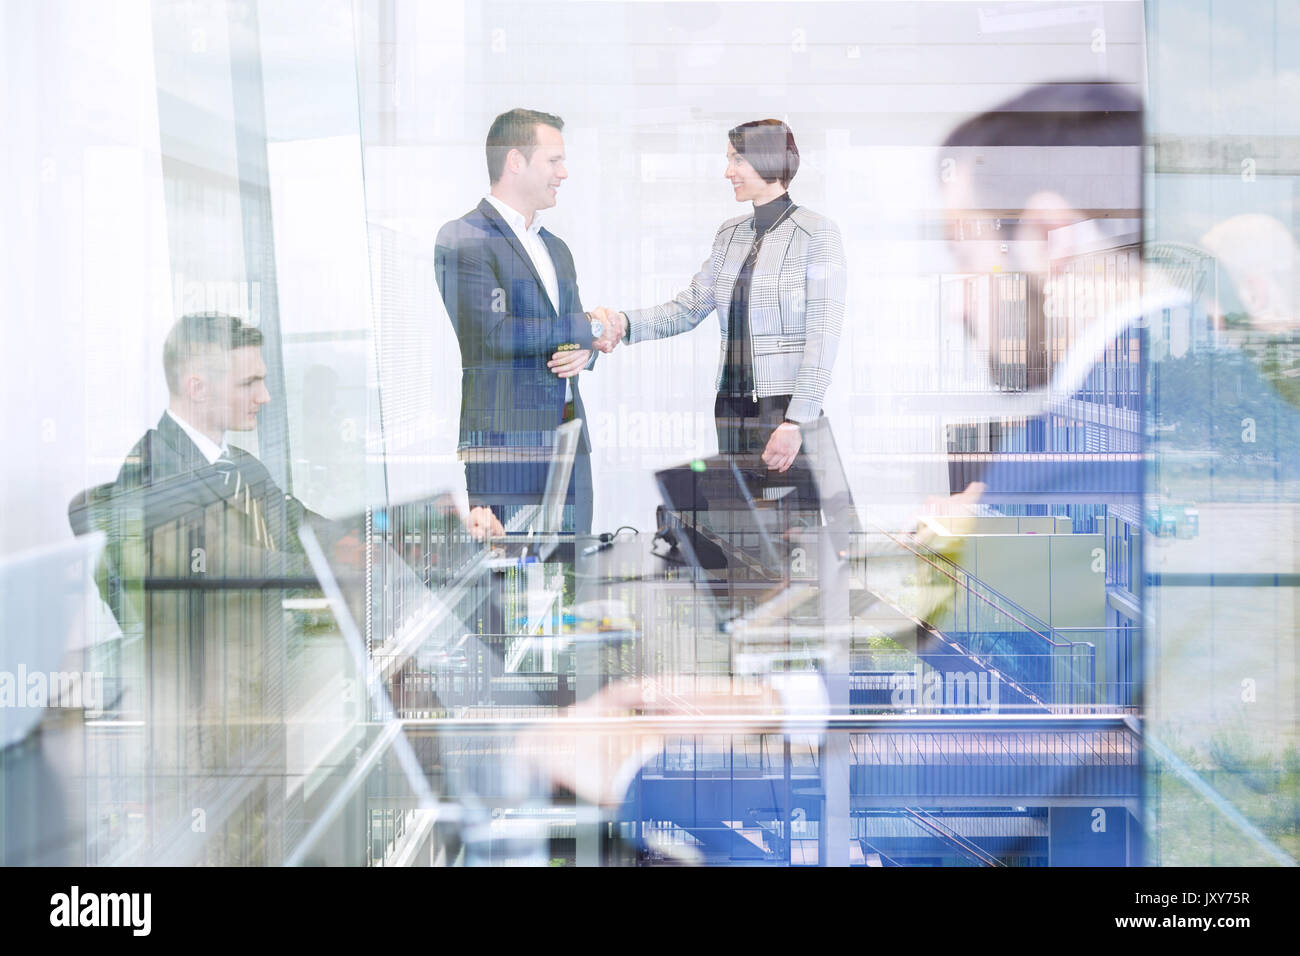 Business people shaking hands in moder corporate office. - Stock Image